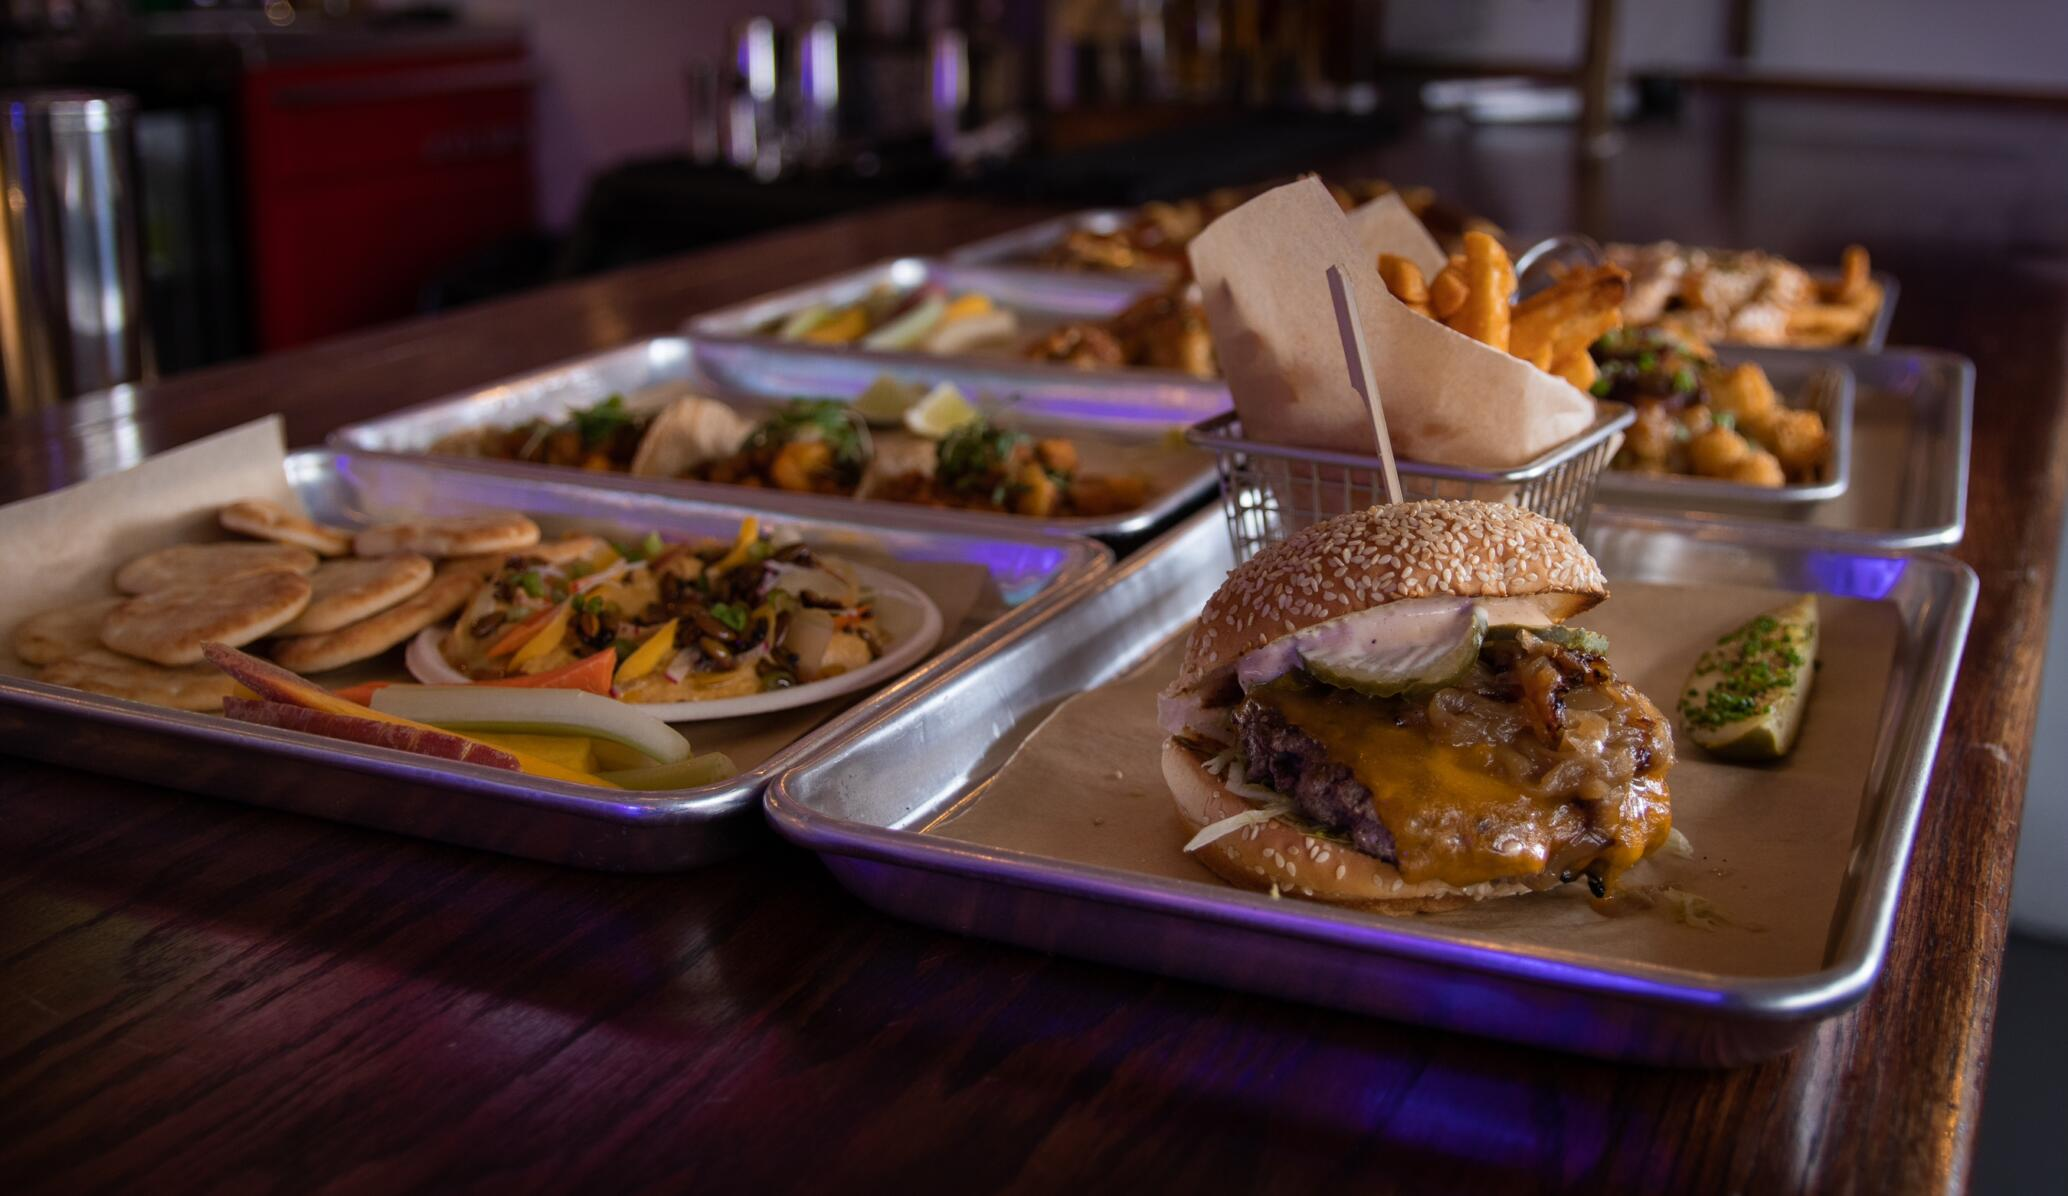 plates of food at a bar including a burger